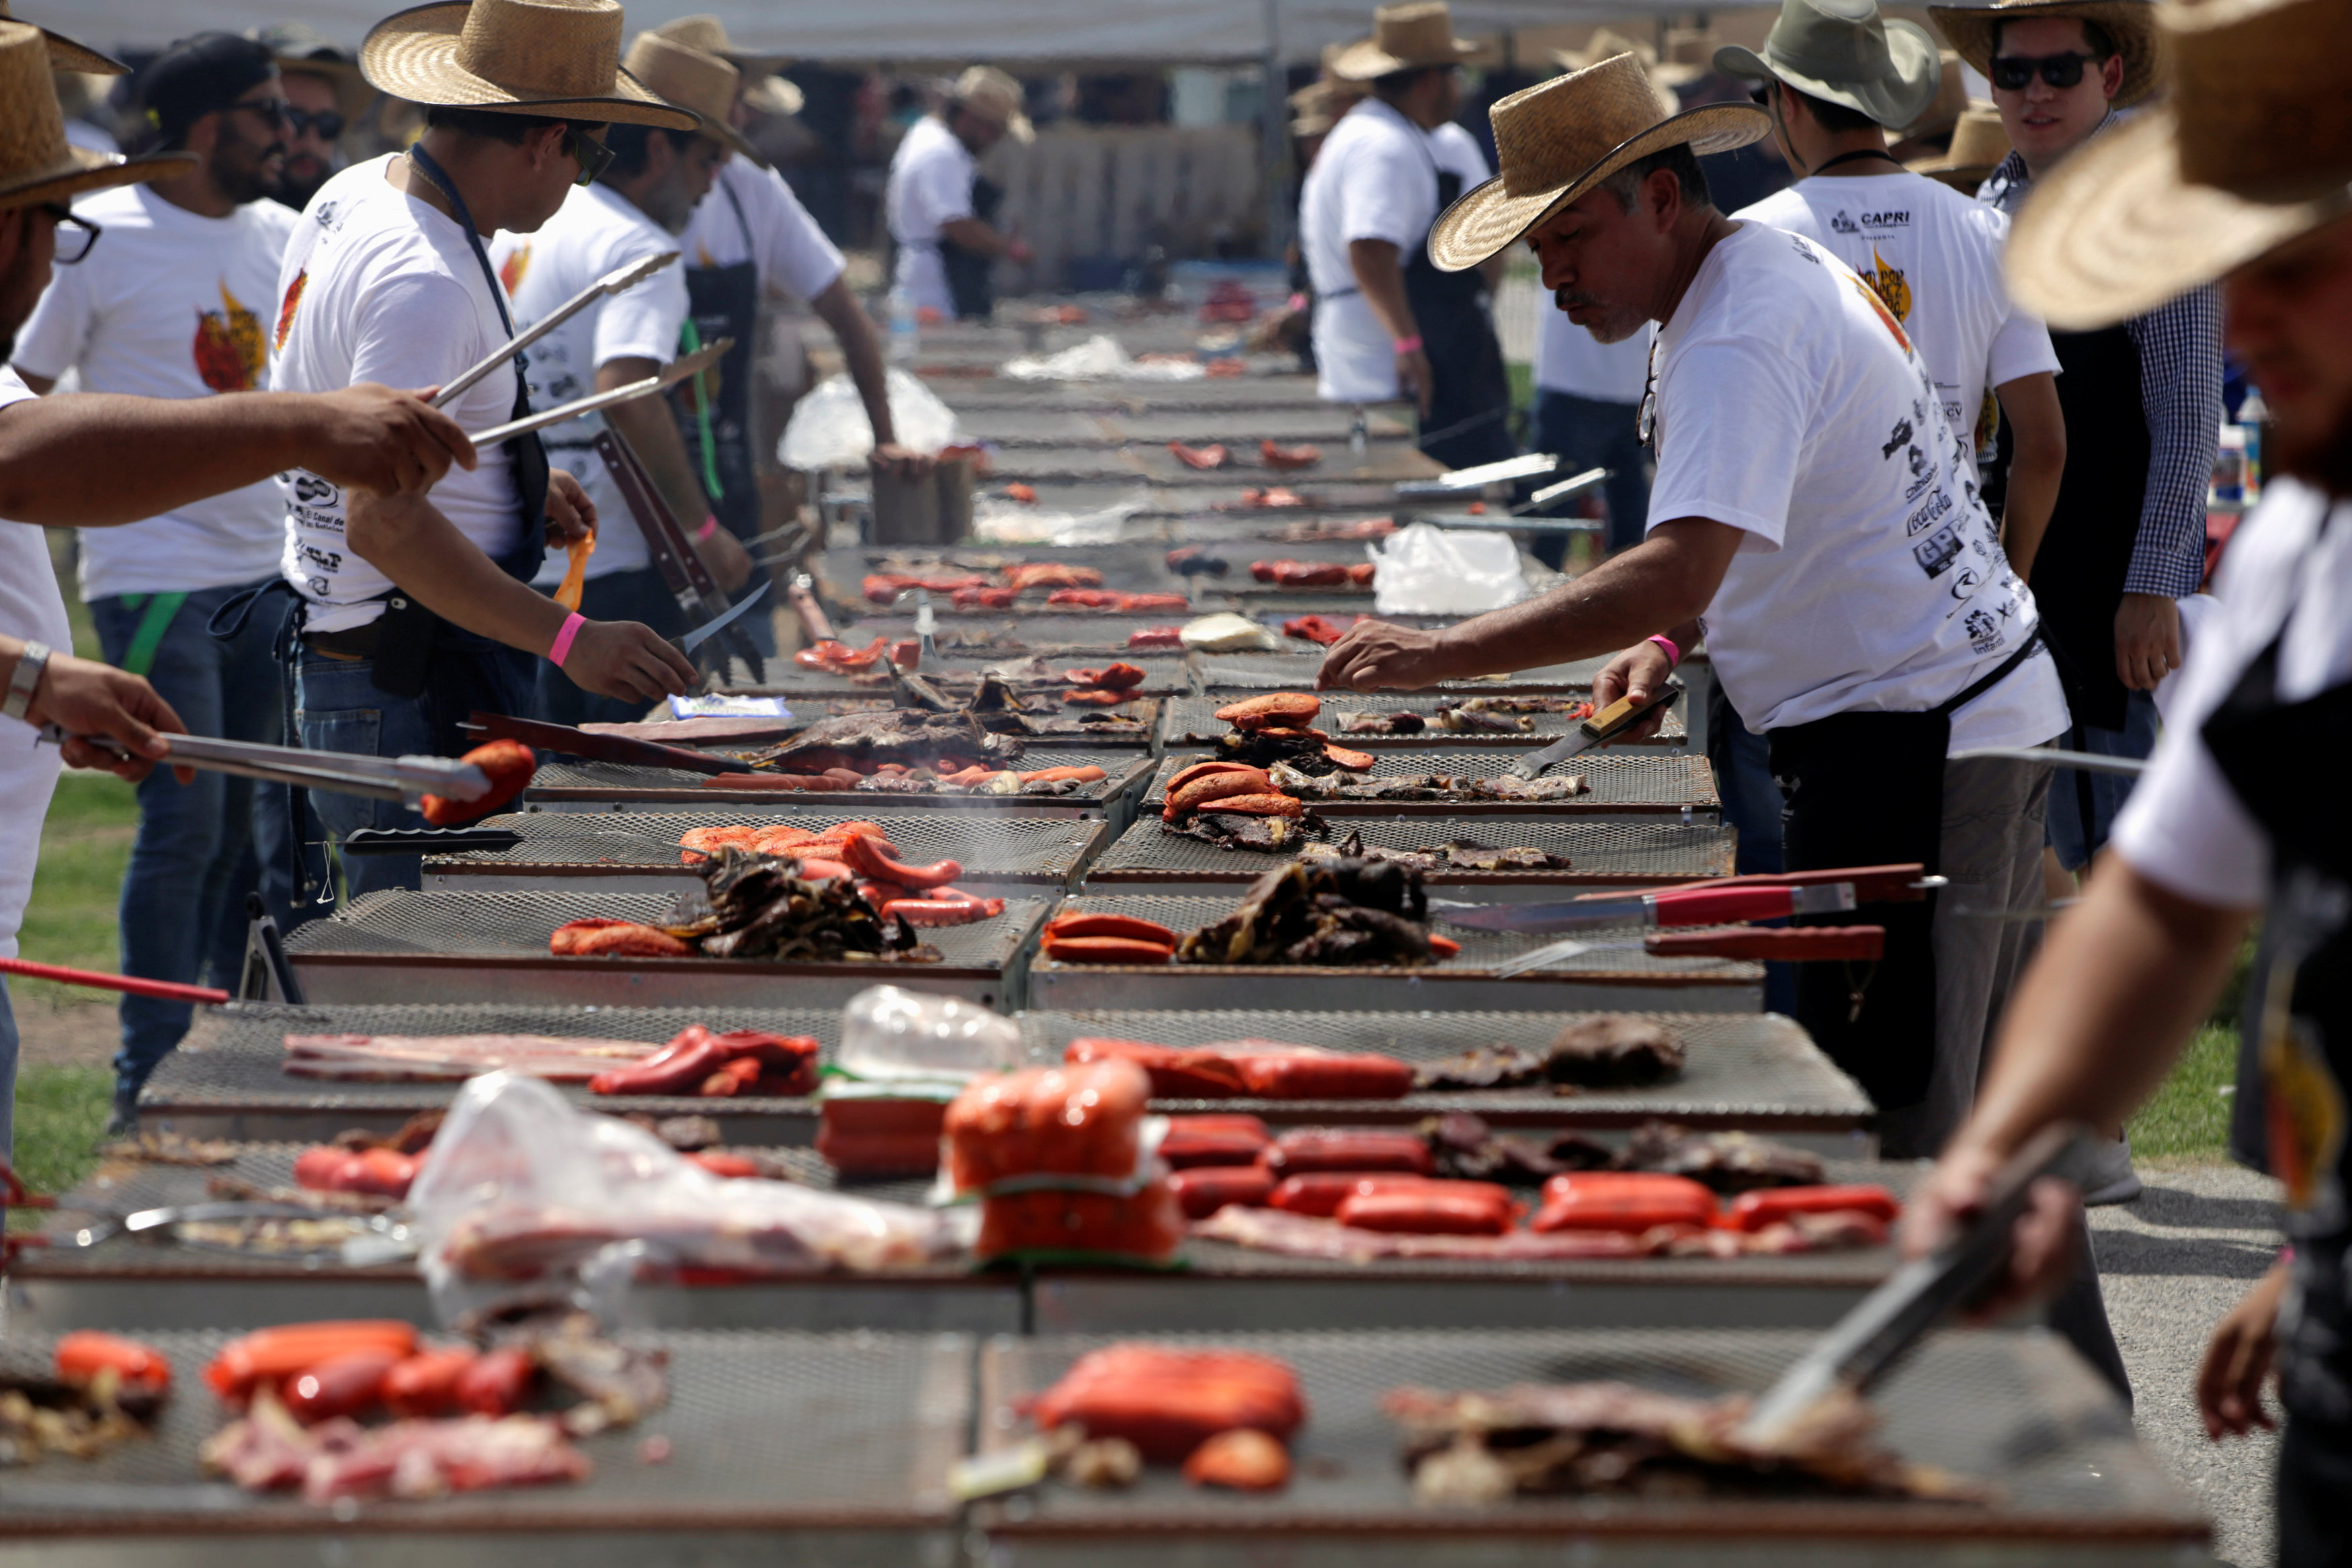 In pictures: More than 350 participants bid to break Guinness record of grilling meat